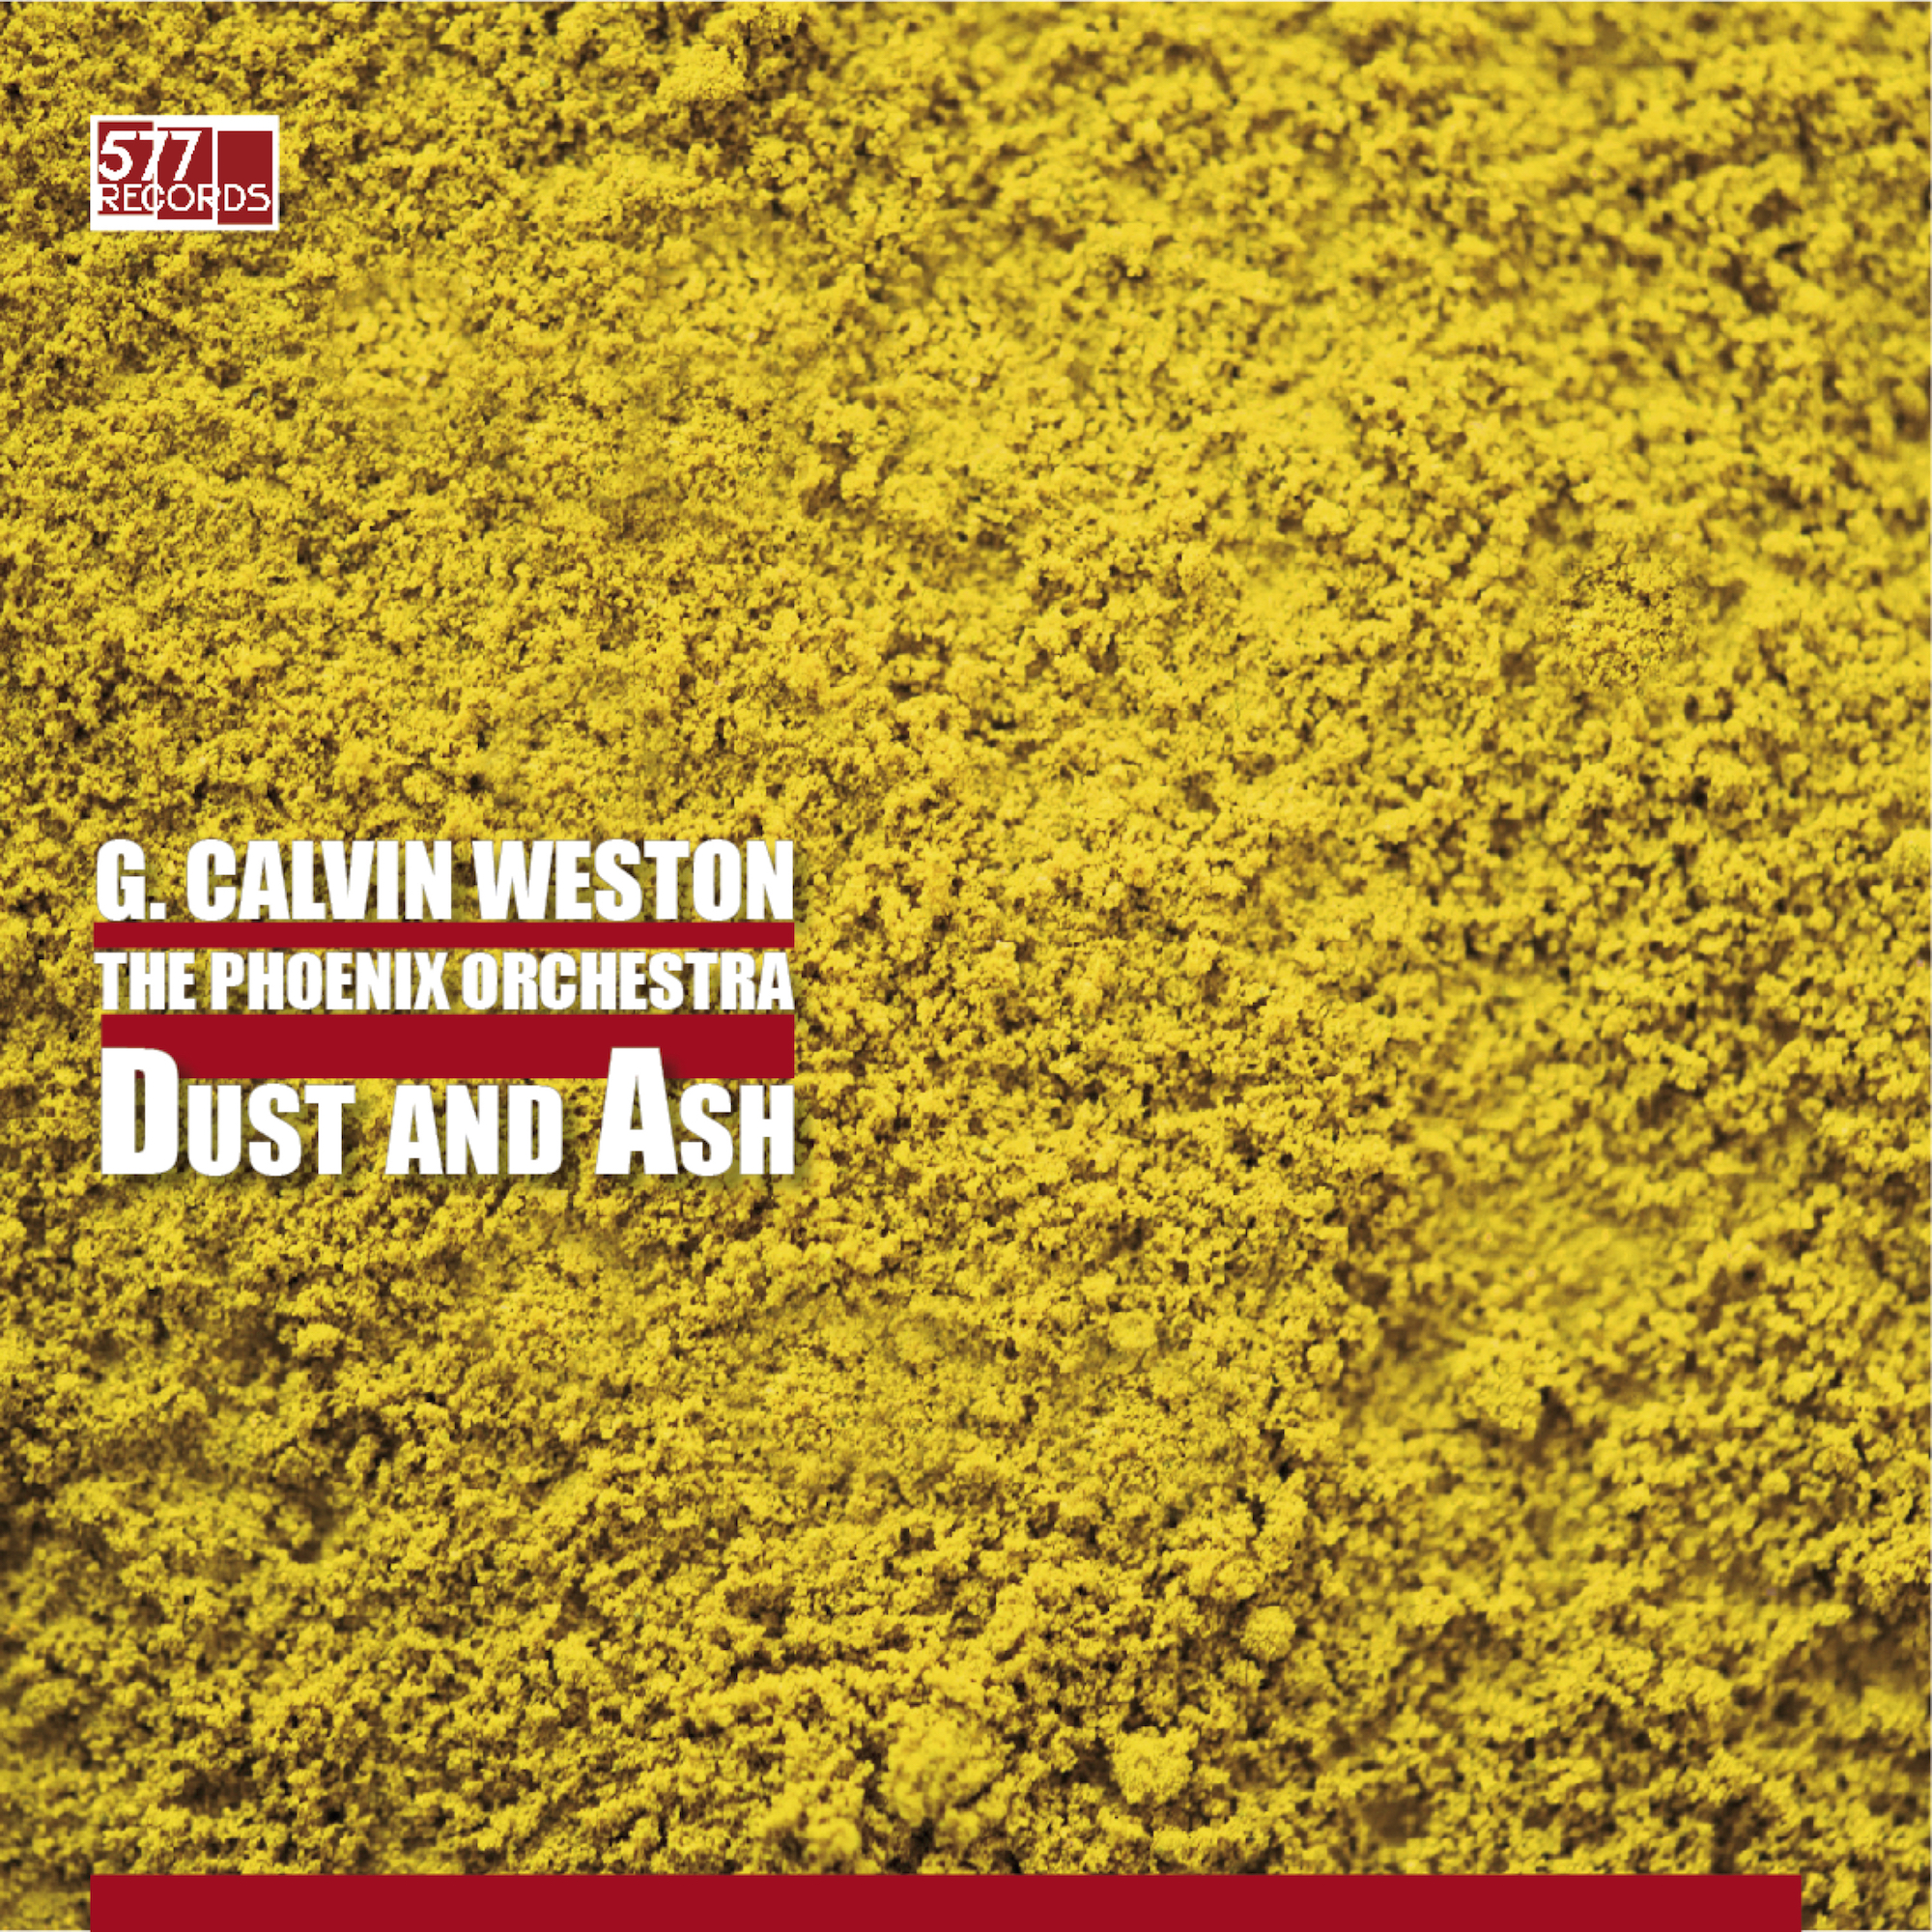 G. CALVIN WESTON THE PHOENIX ORCHESTRA - DUST AND ASH